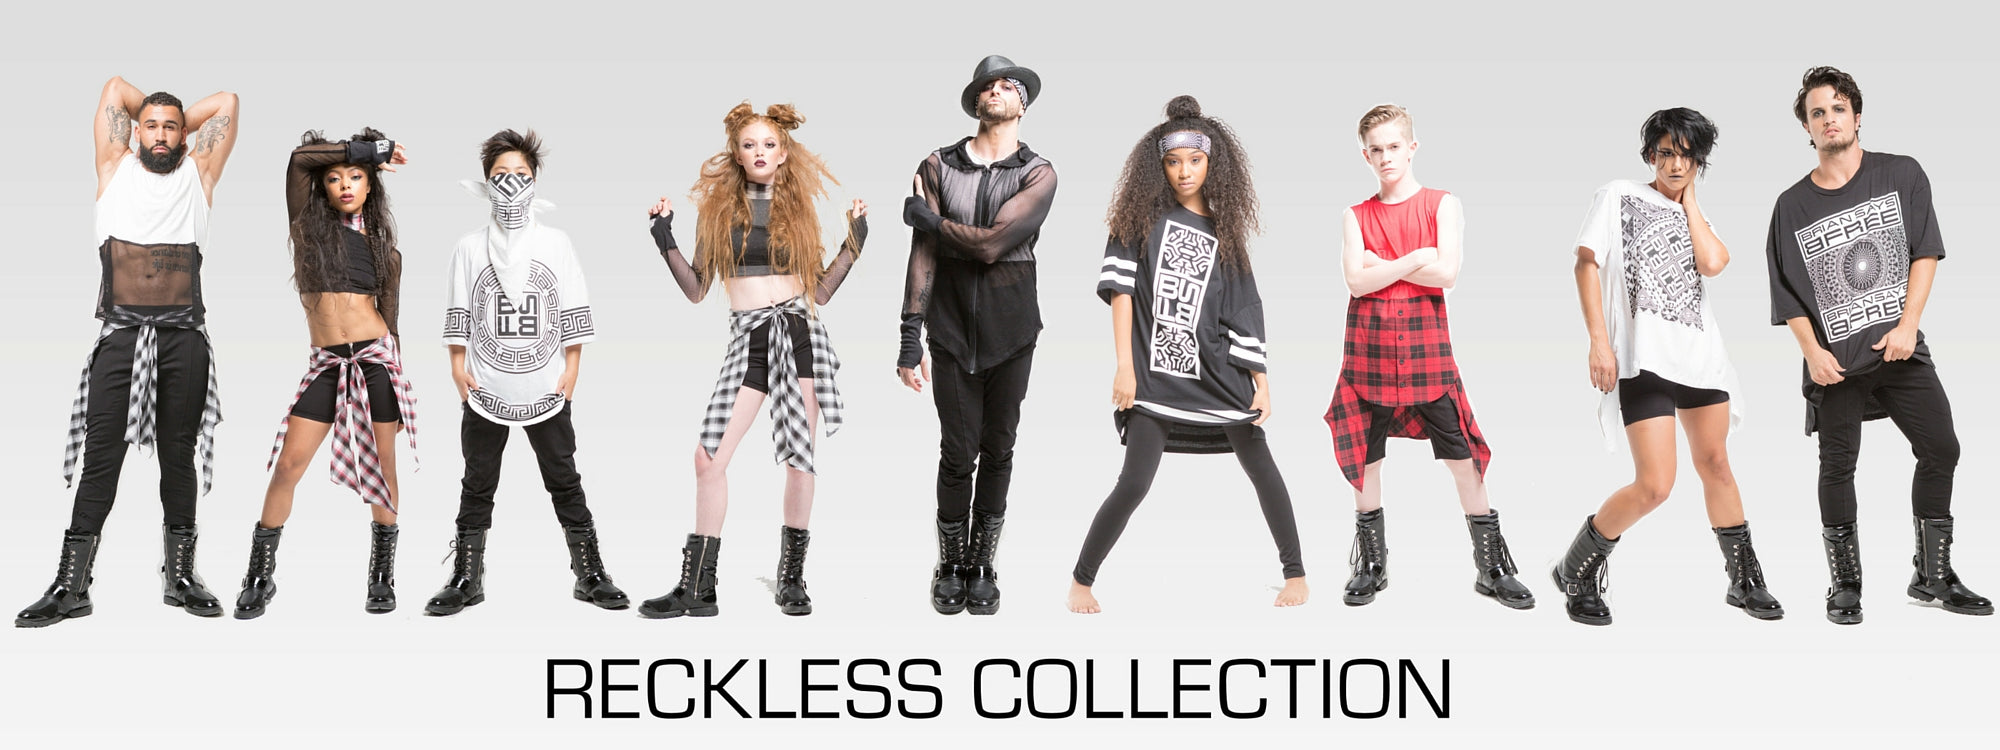 RECKLESS COLLECTION